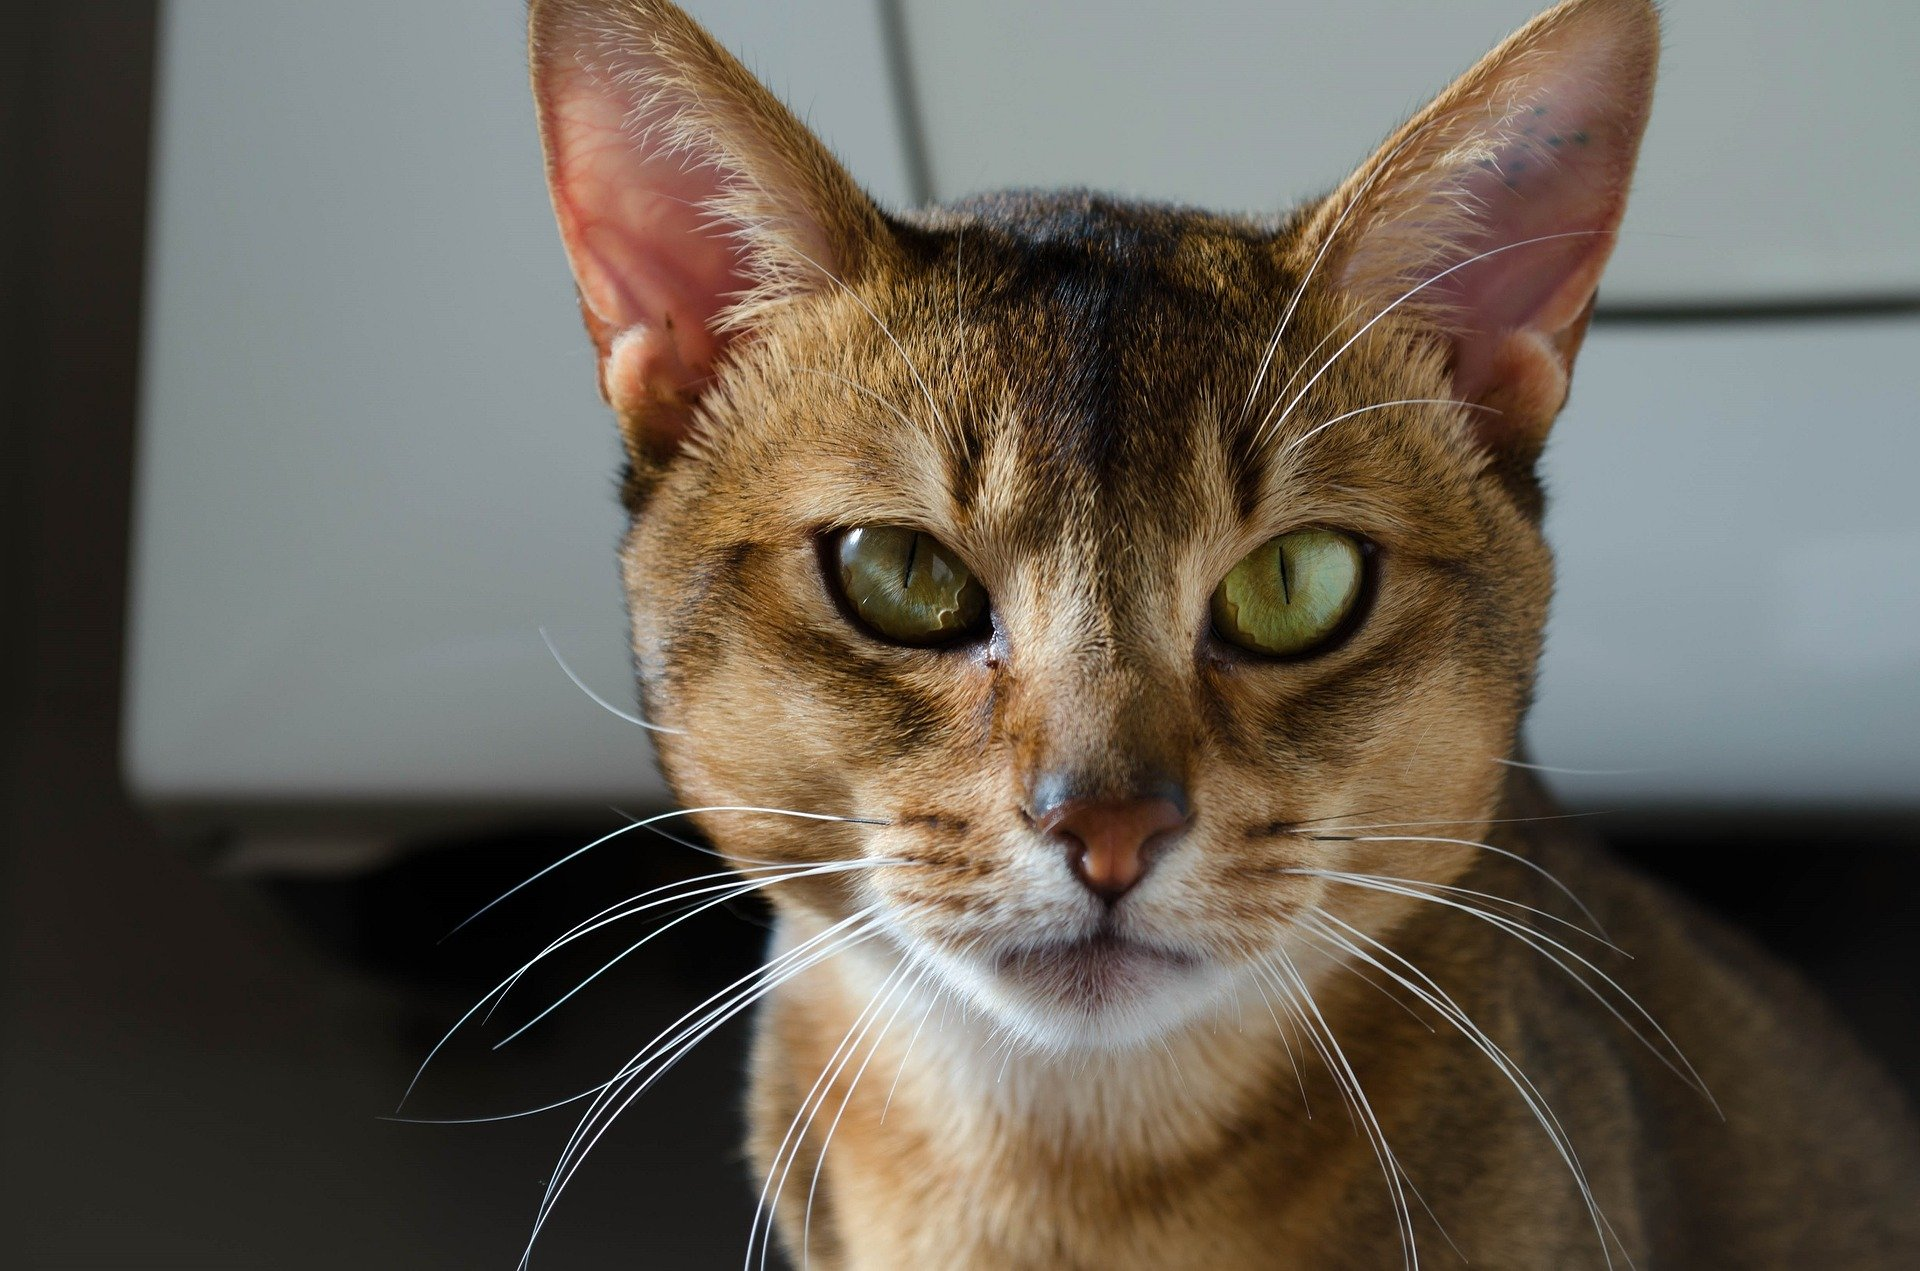 Cat breeds: The Abyssinian Cat Characteristics and Personality